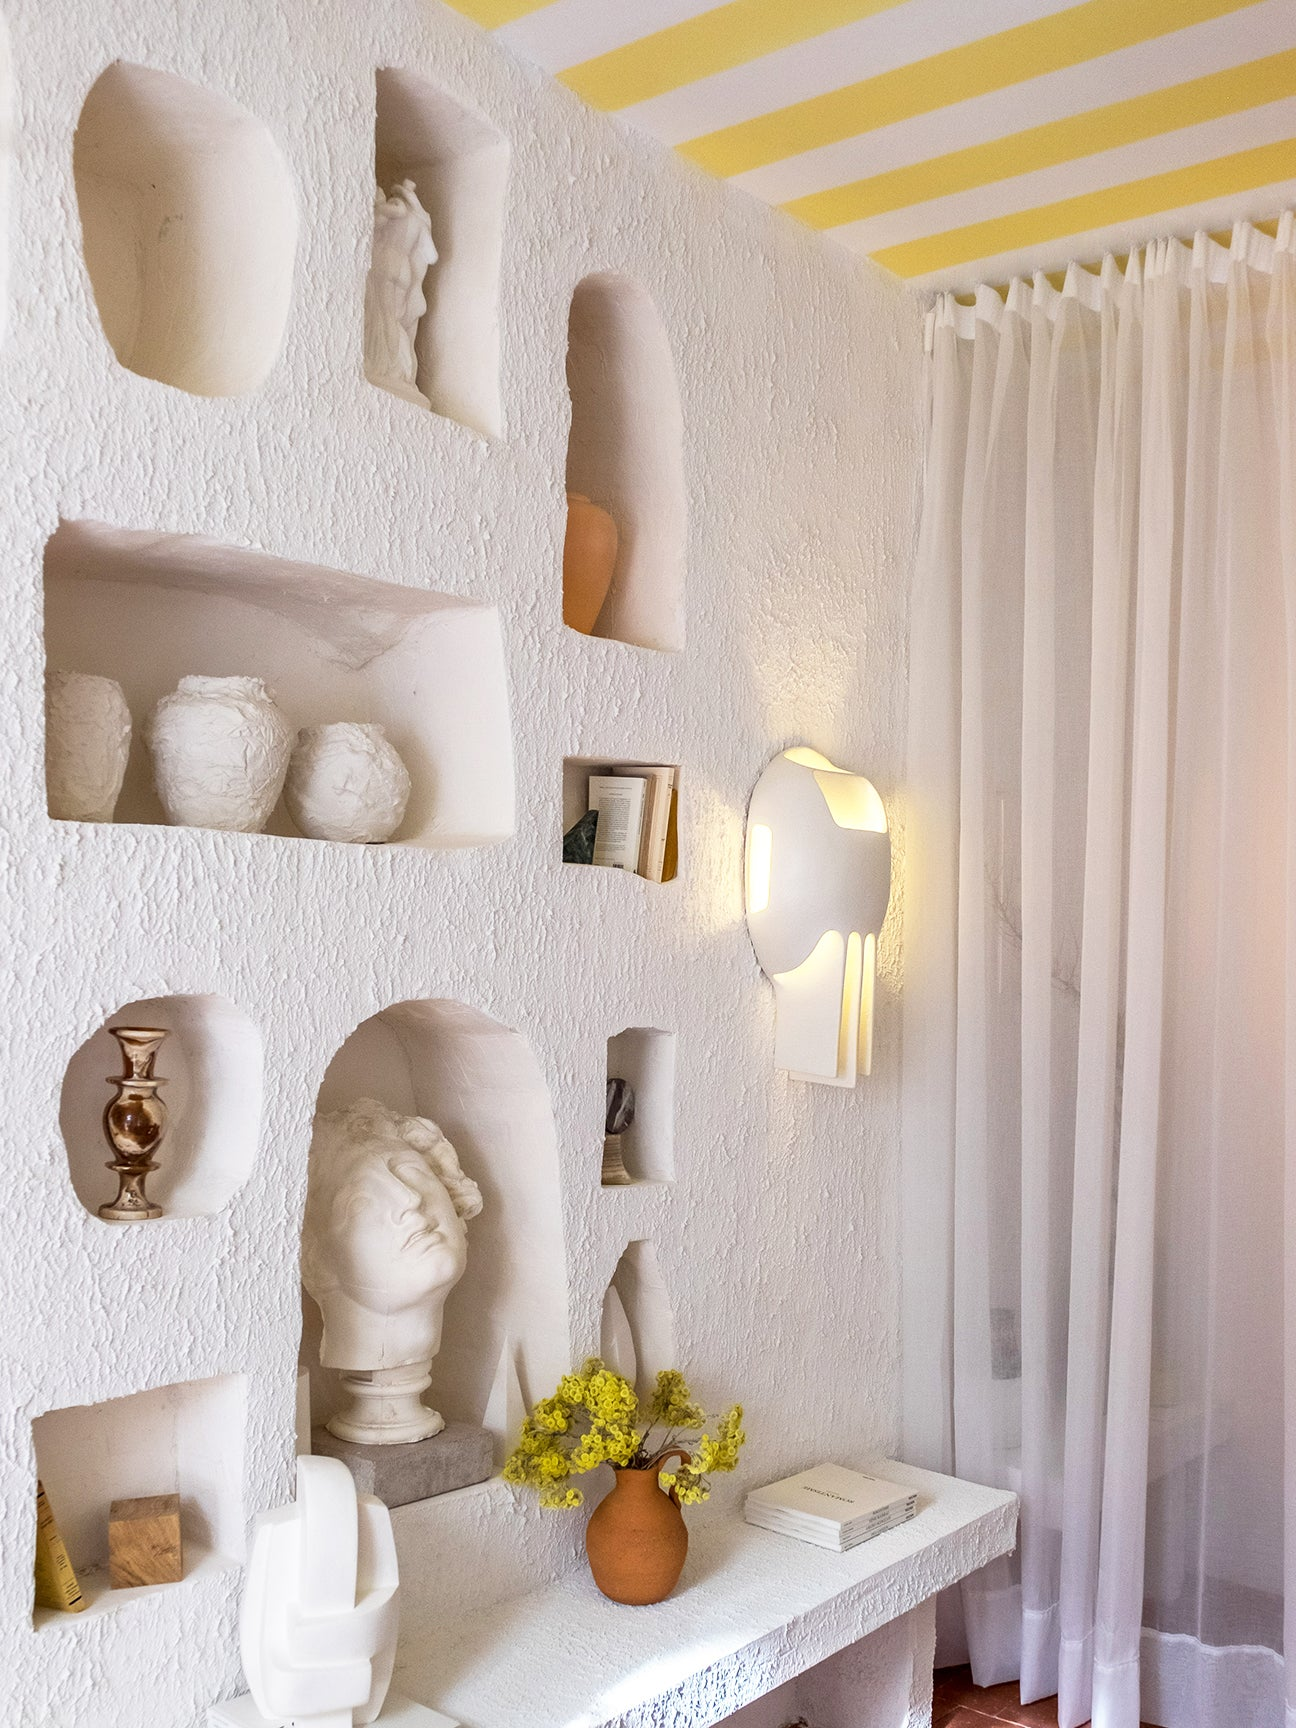 wall niches filled with vases and sculptures